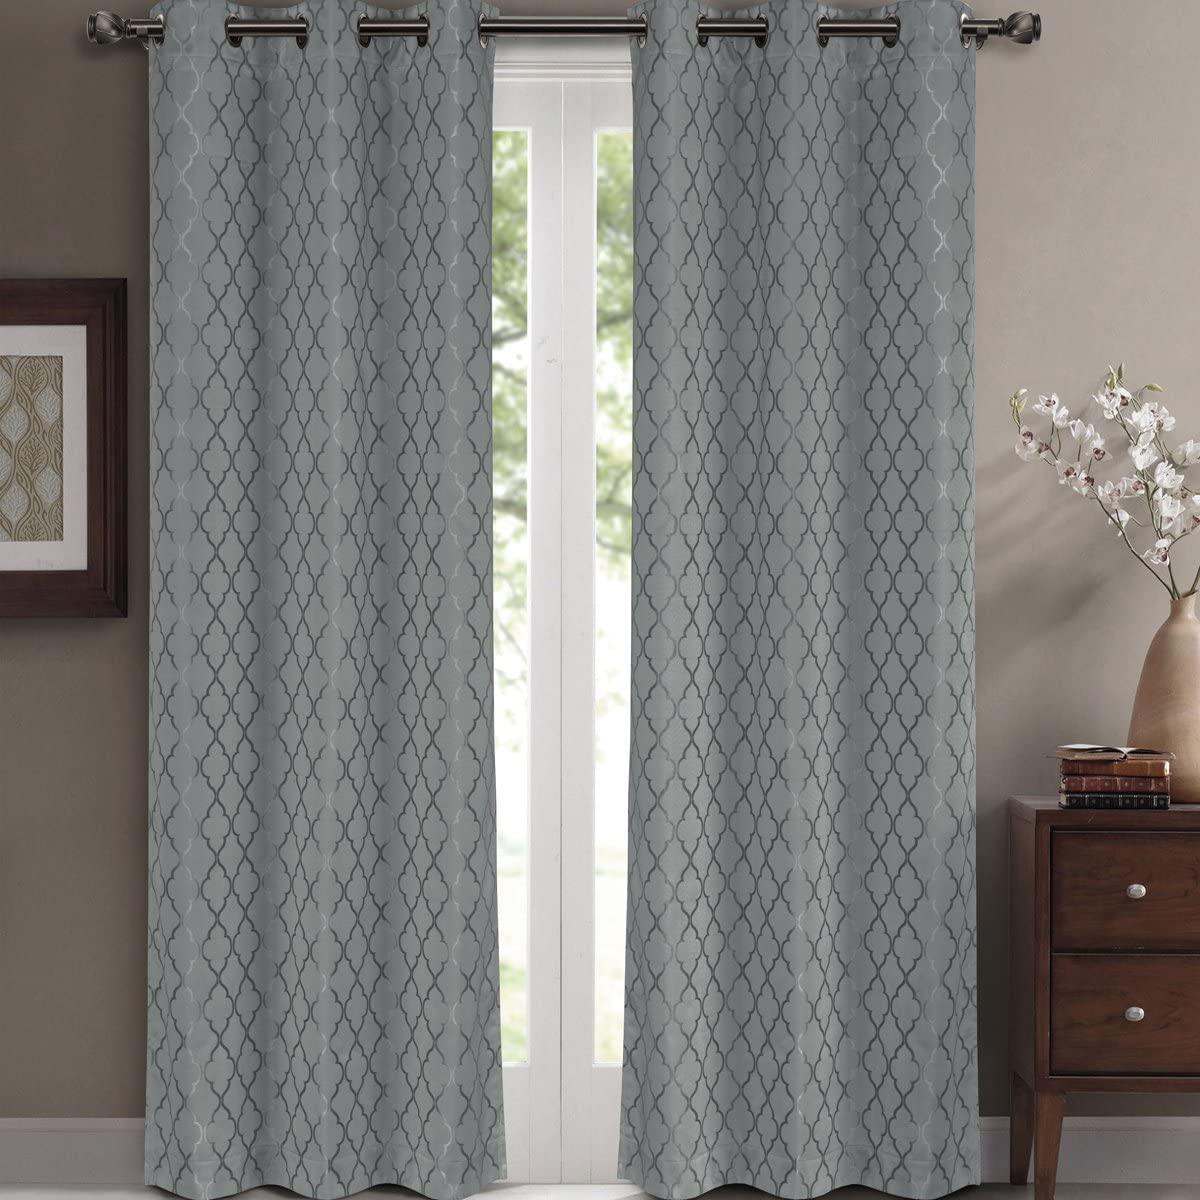 GoLinens Blackout Window Curtain Panels Set of 2 Willow Jacquard Thermal Insulated 84 x 108 inches, Grey